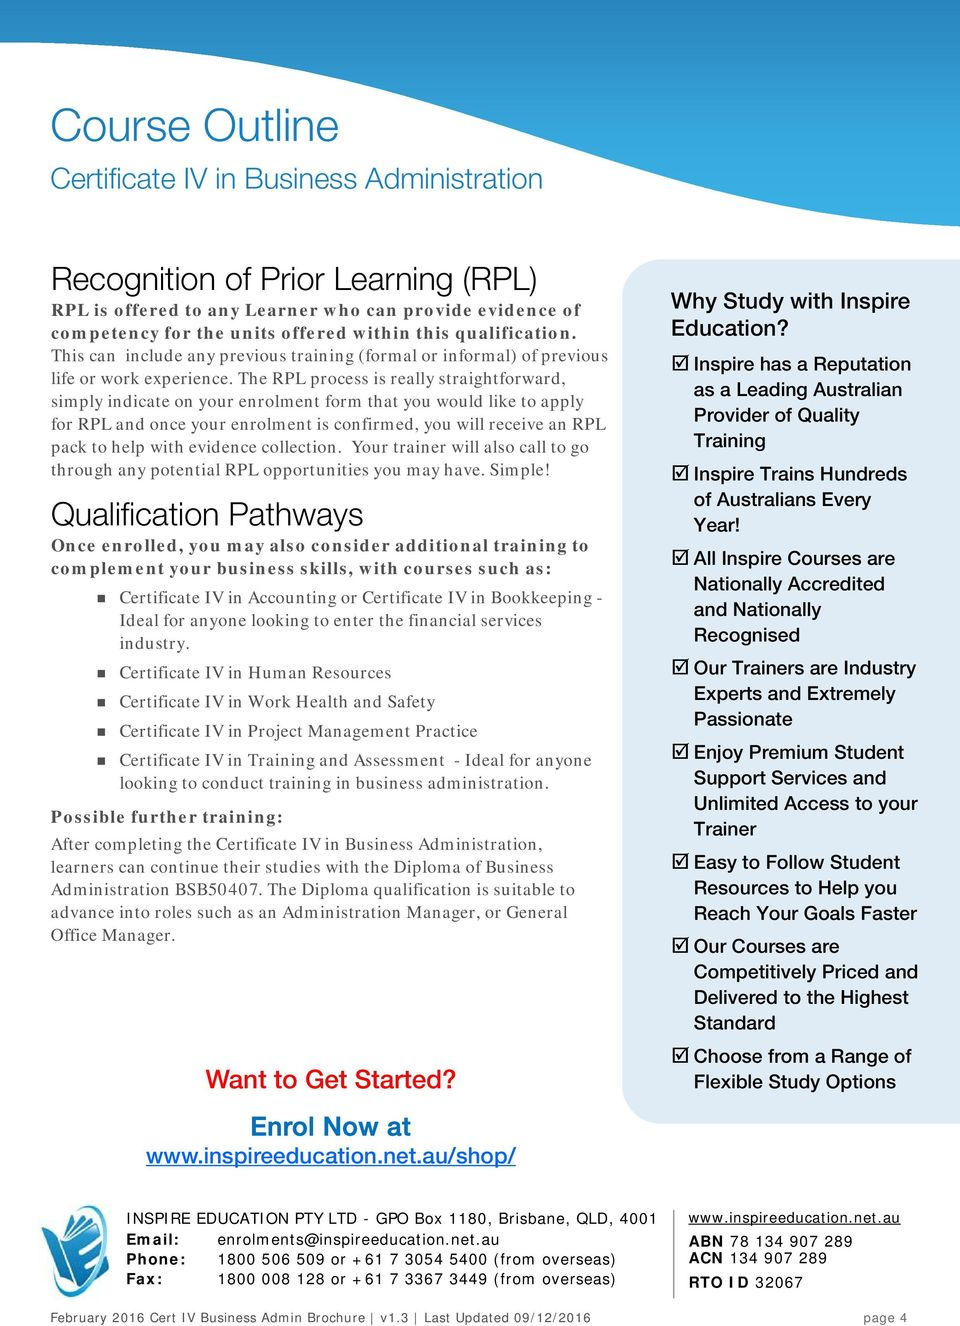 The RPL process is really straightforward, simply indicate on your enrolment form that you would like to apply for RPL and once your enrolment is confirmed, you will receive an RPL pack to help with